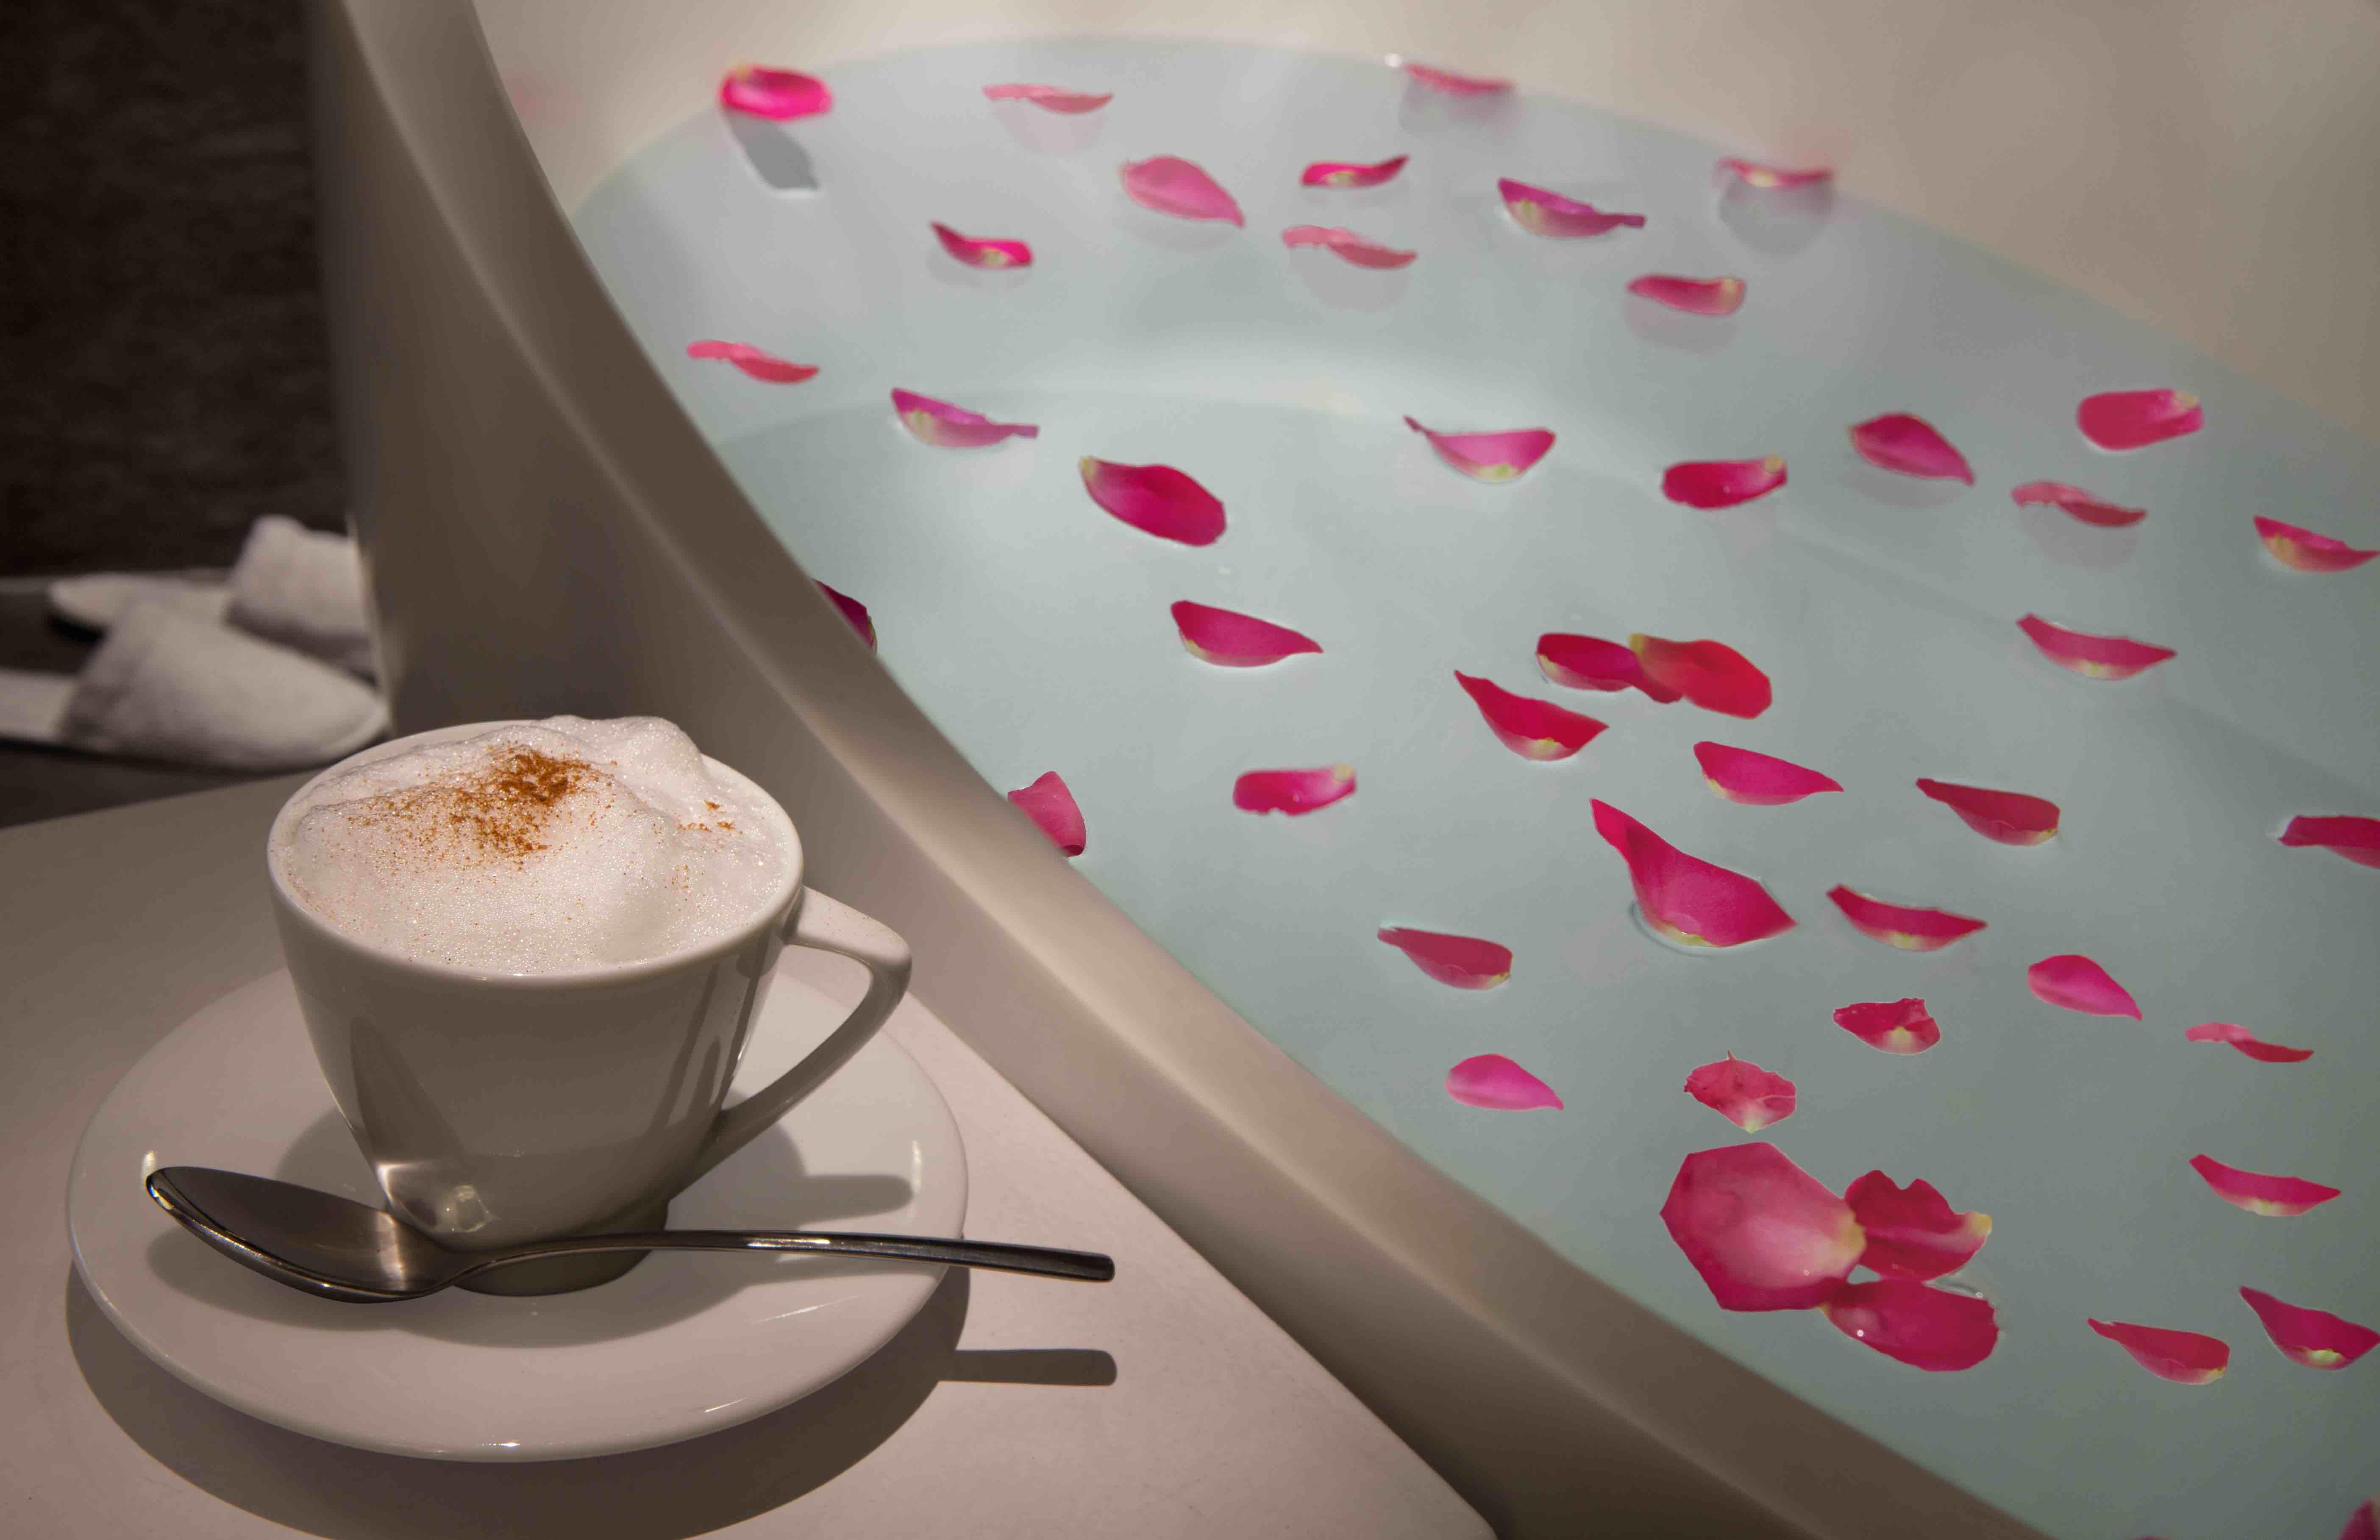 Coffee next to a bathtub with flower petals